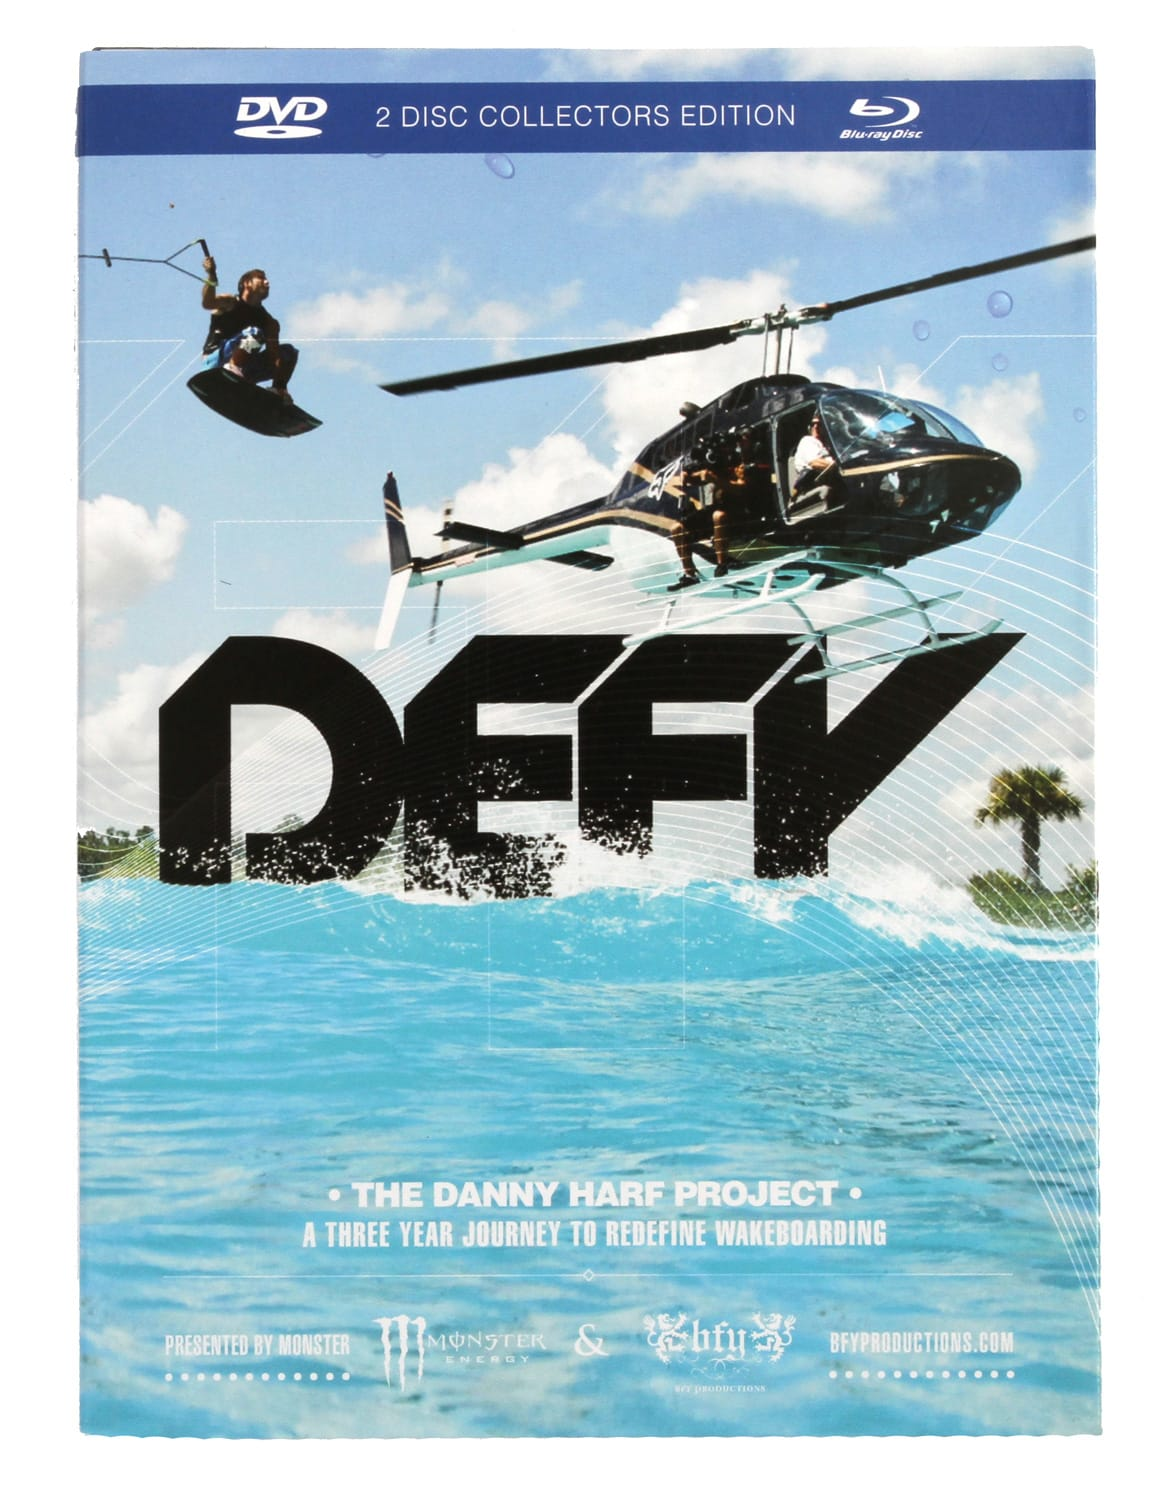 Ronix Defy The Danny Harf Project DVD/Blu-Ray Combo Pack virodtdhpc15zz-ronix-dvds